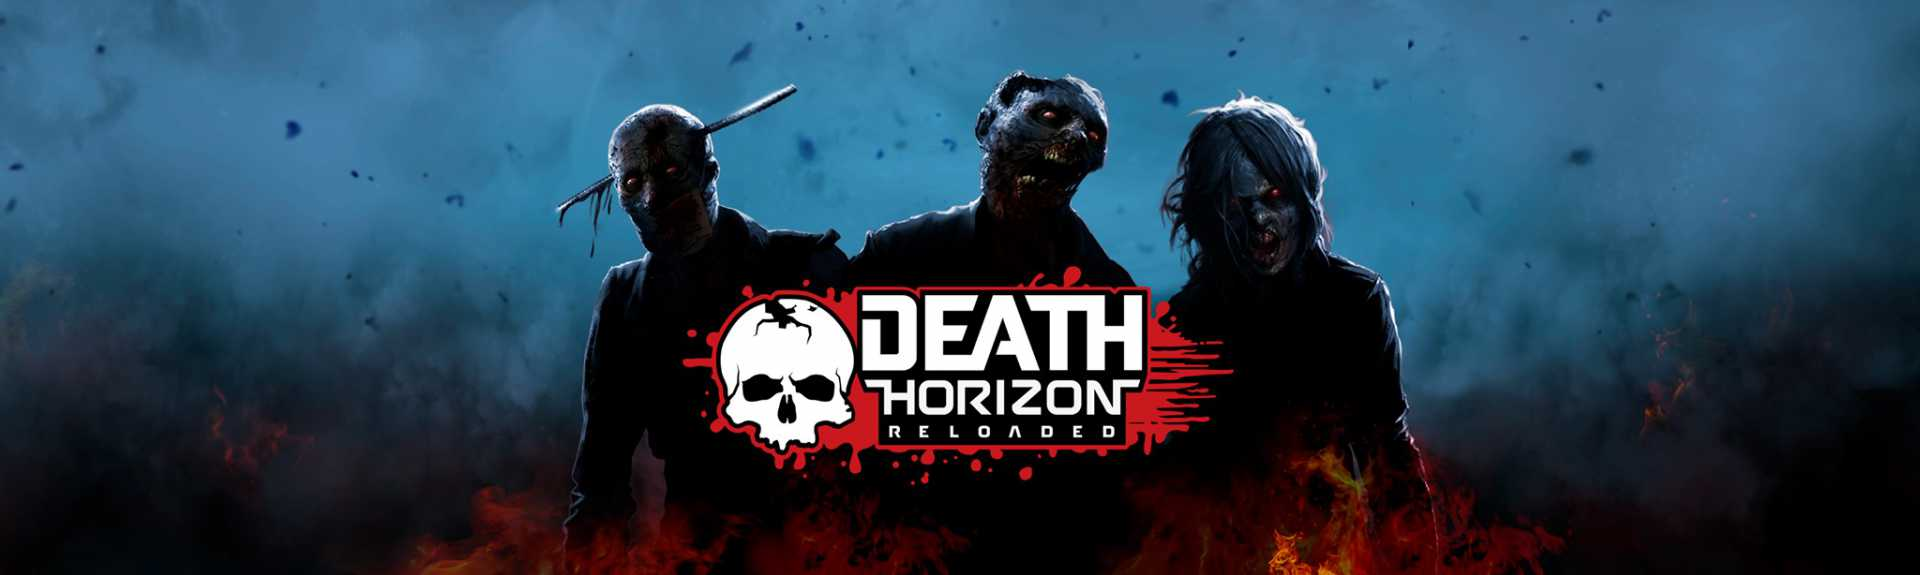 Death Horizon: Reloaded - ANÁLISIS